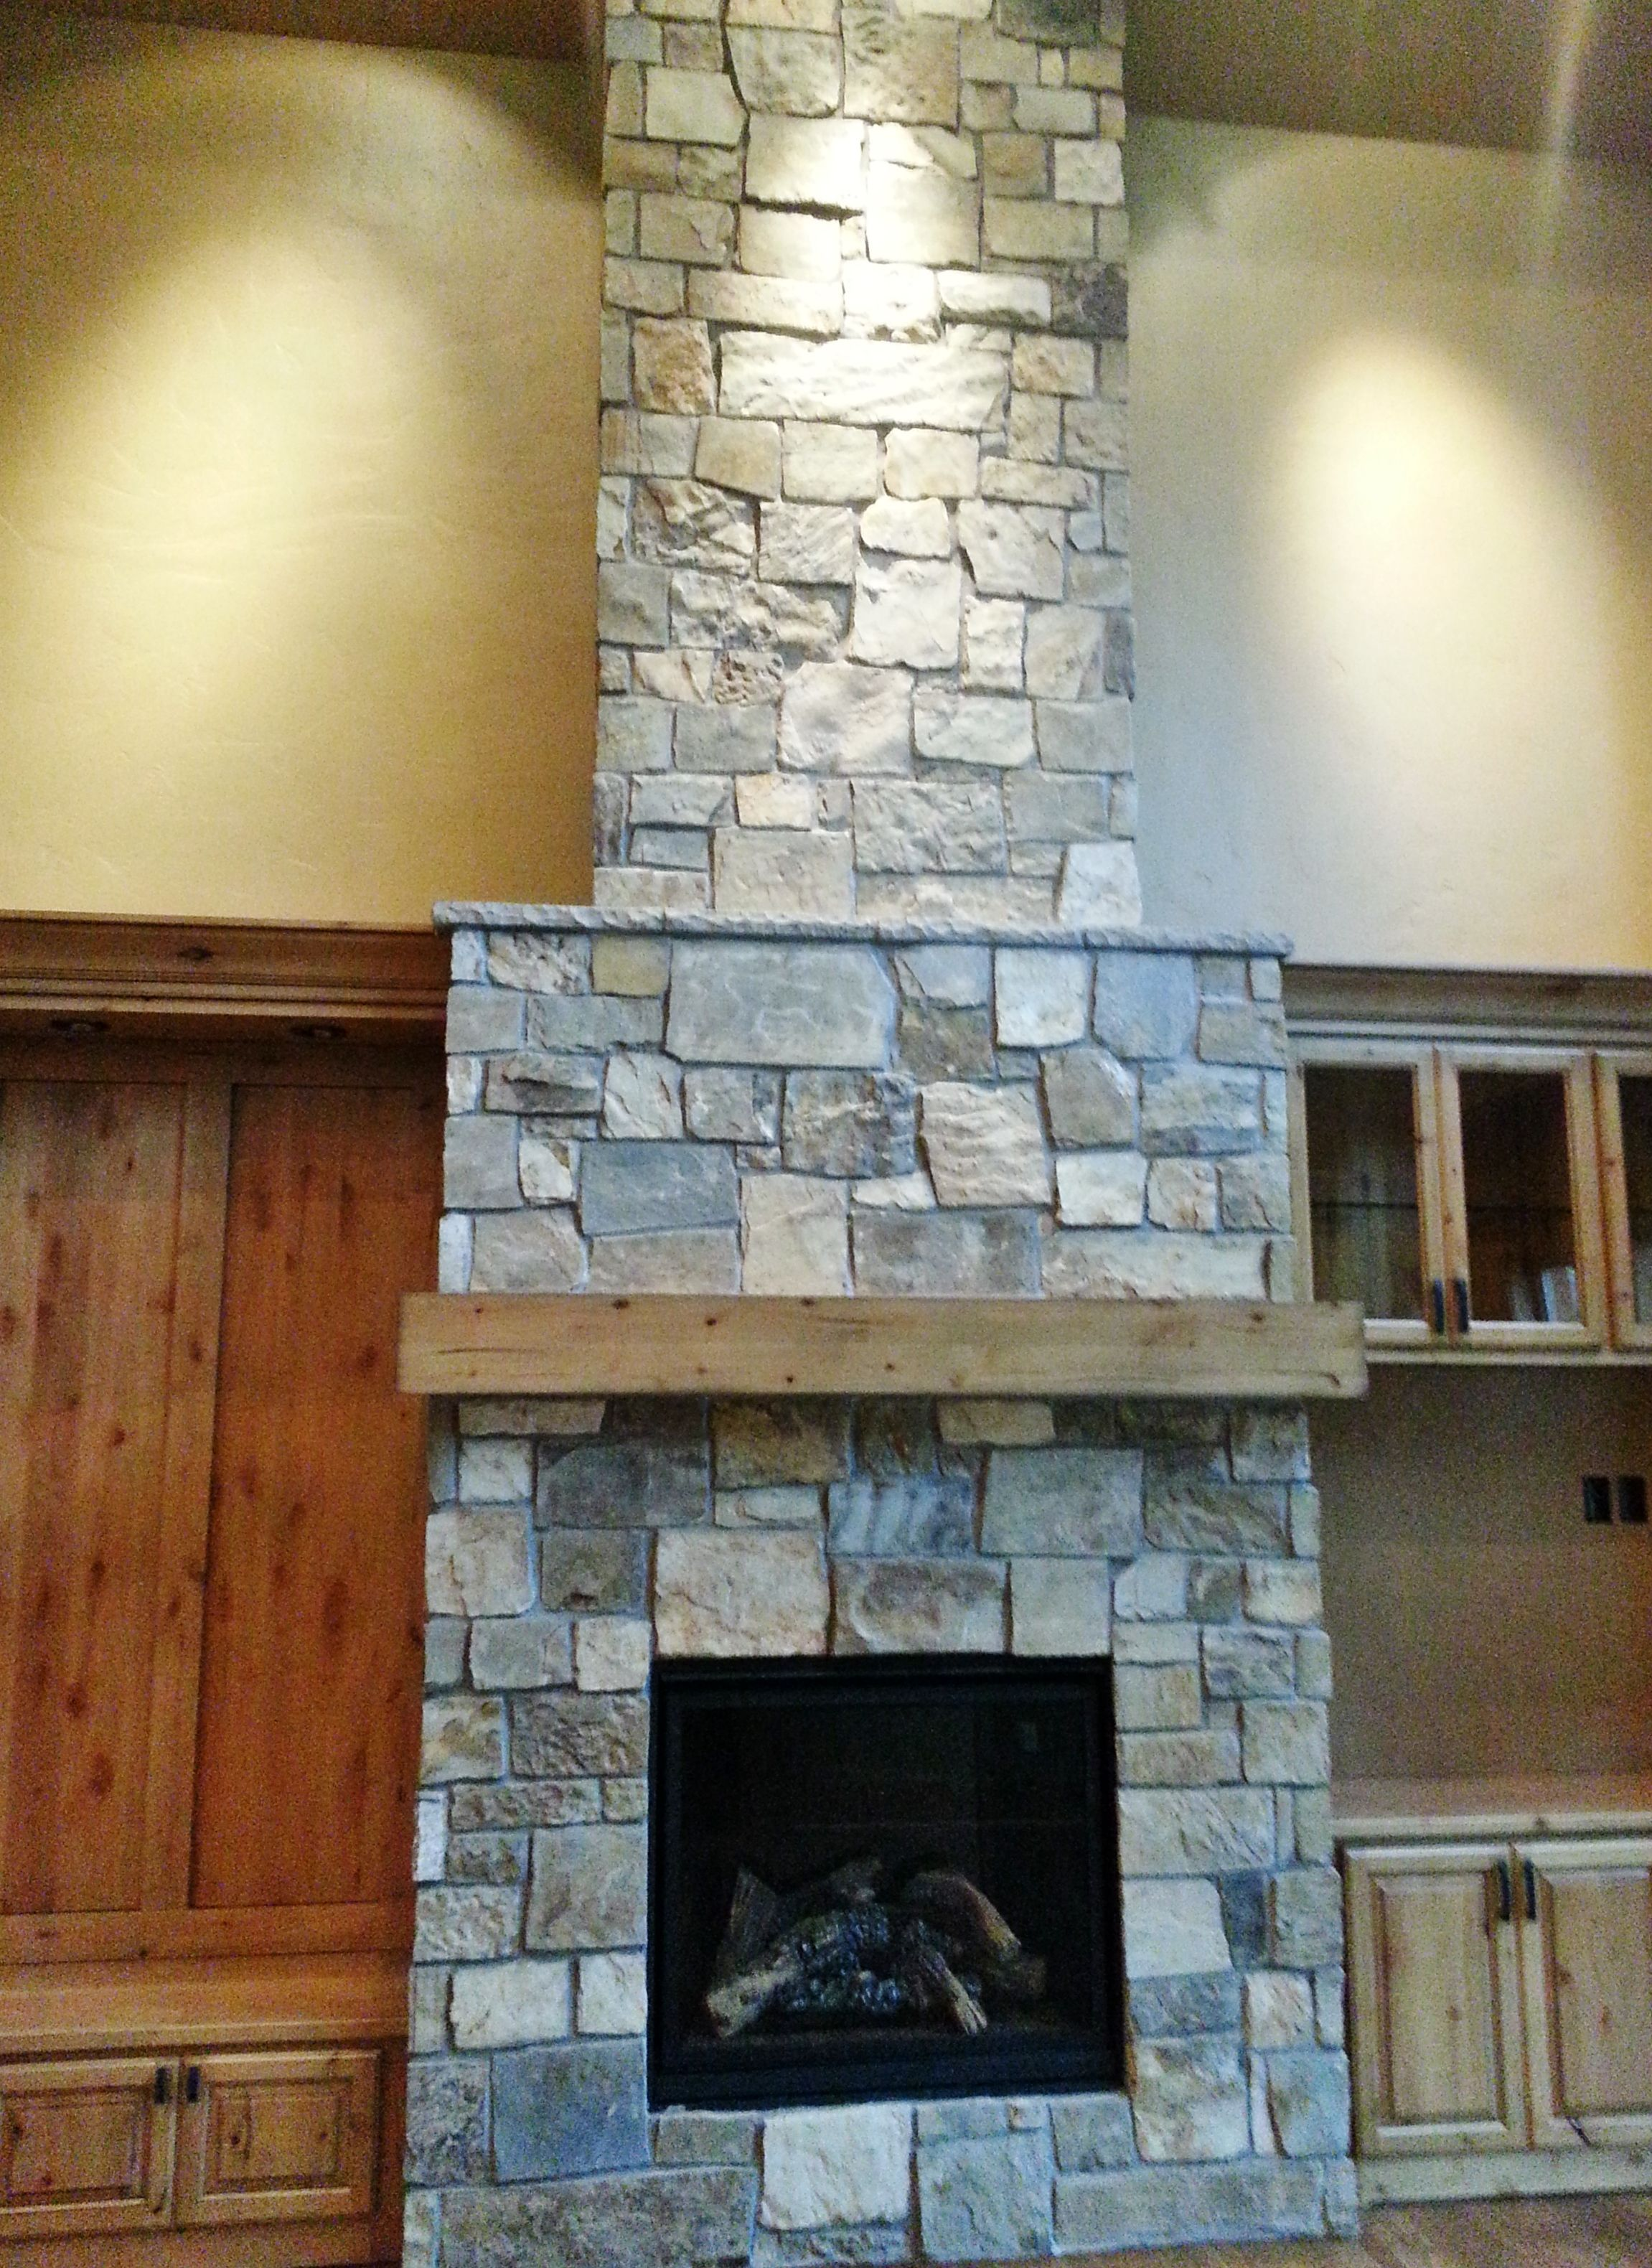 Natural Stone, New Construction, Living Room, Fireplace, Wood Built In  Surroundings